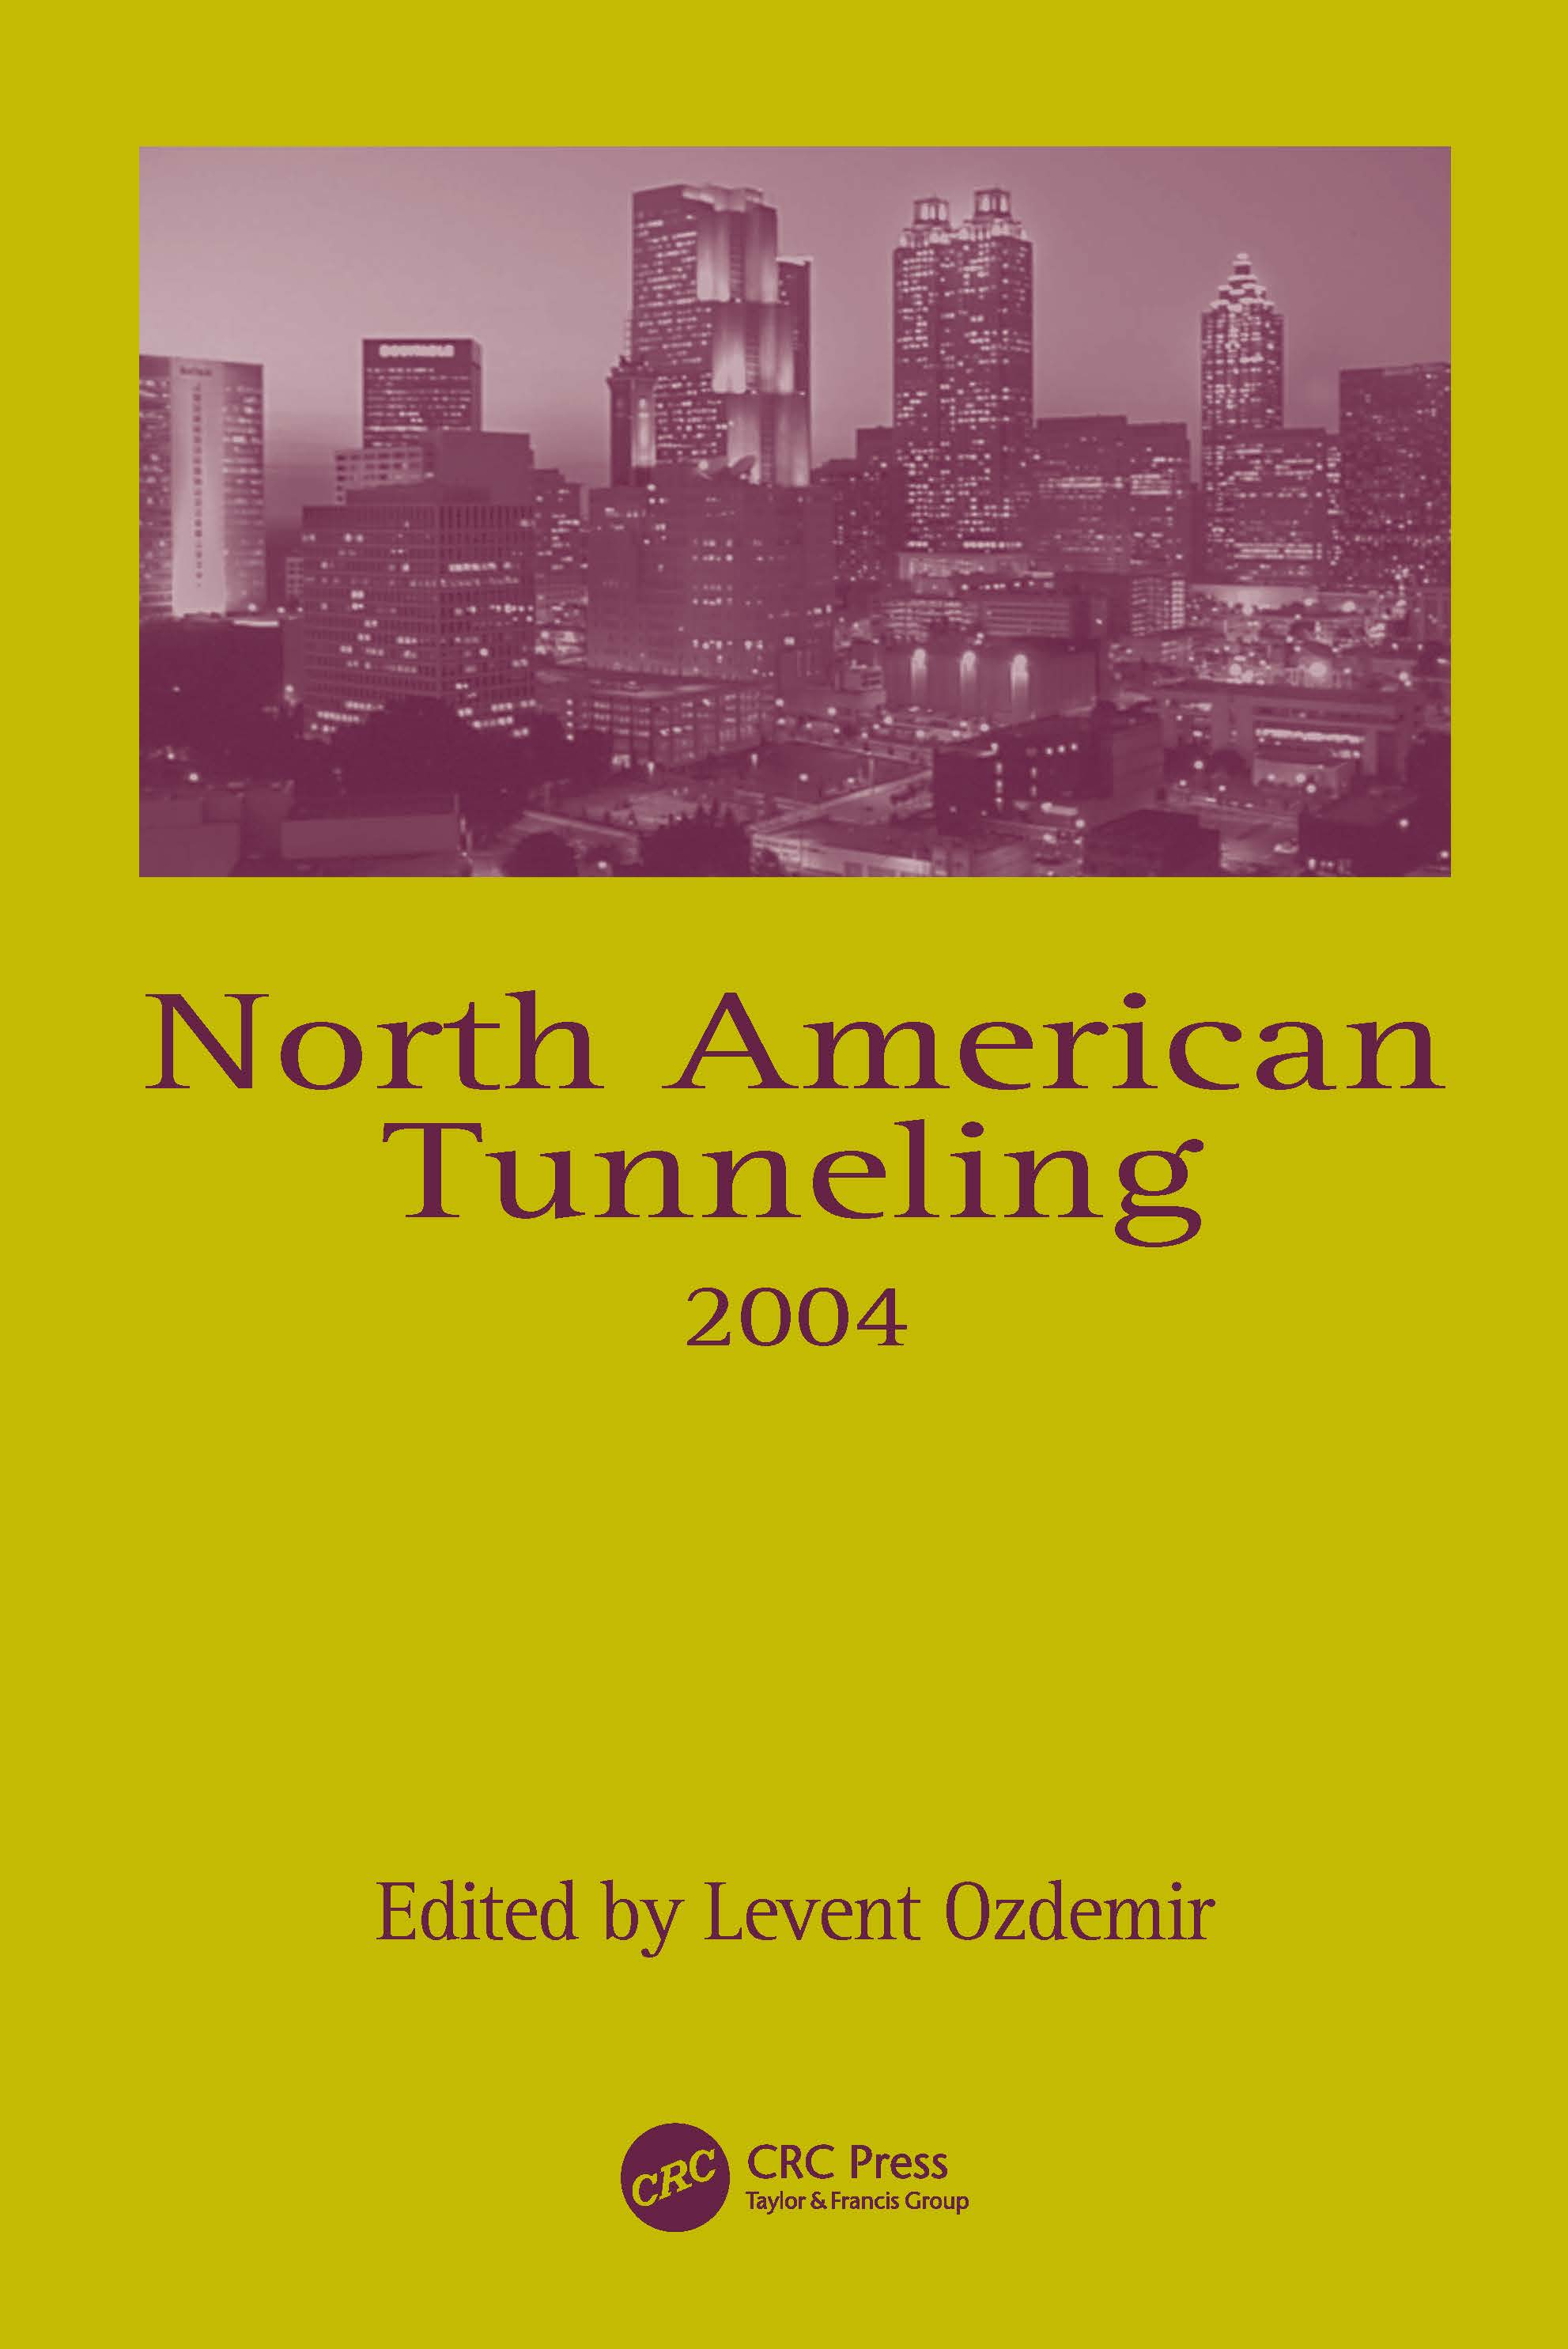 North American Tunneling 2004: Proceedings of the North American Tunneling Conference 2004, 17-22 April 2004, Atlanta, Georgia, USA, 1st Edition (Hardback) book cover